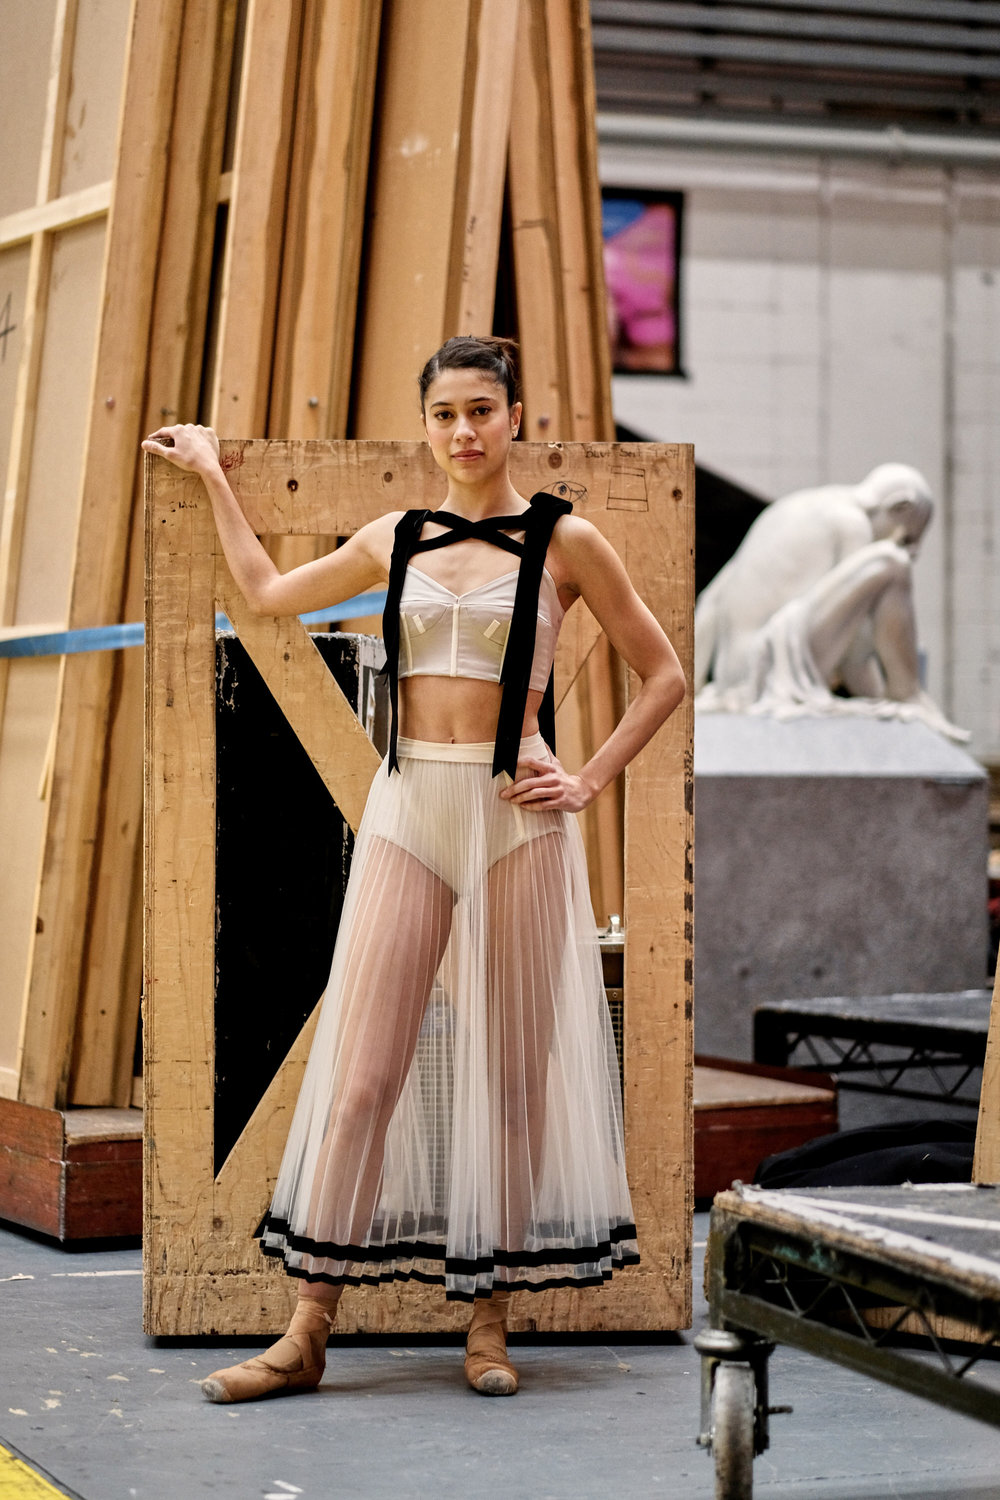 48 hours with Erdem as he designs costumes for Christopher Wheeldon's Corybantic Games at the Royal Ballet. - Photographed for T: The New York Times Style Magazine -read the full story hereand check out the full gallery by clicking below